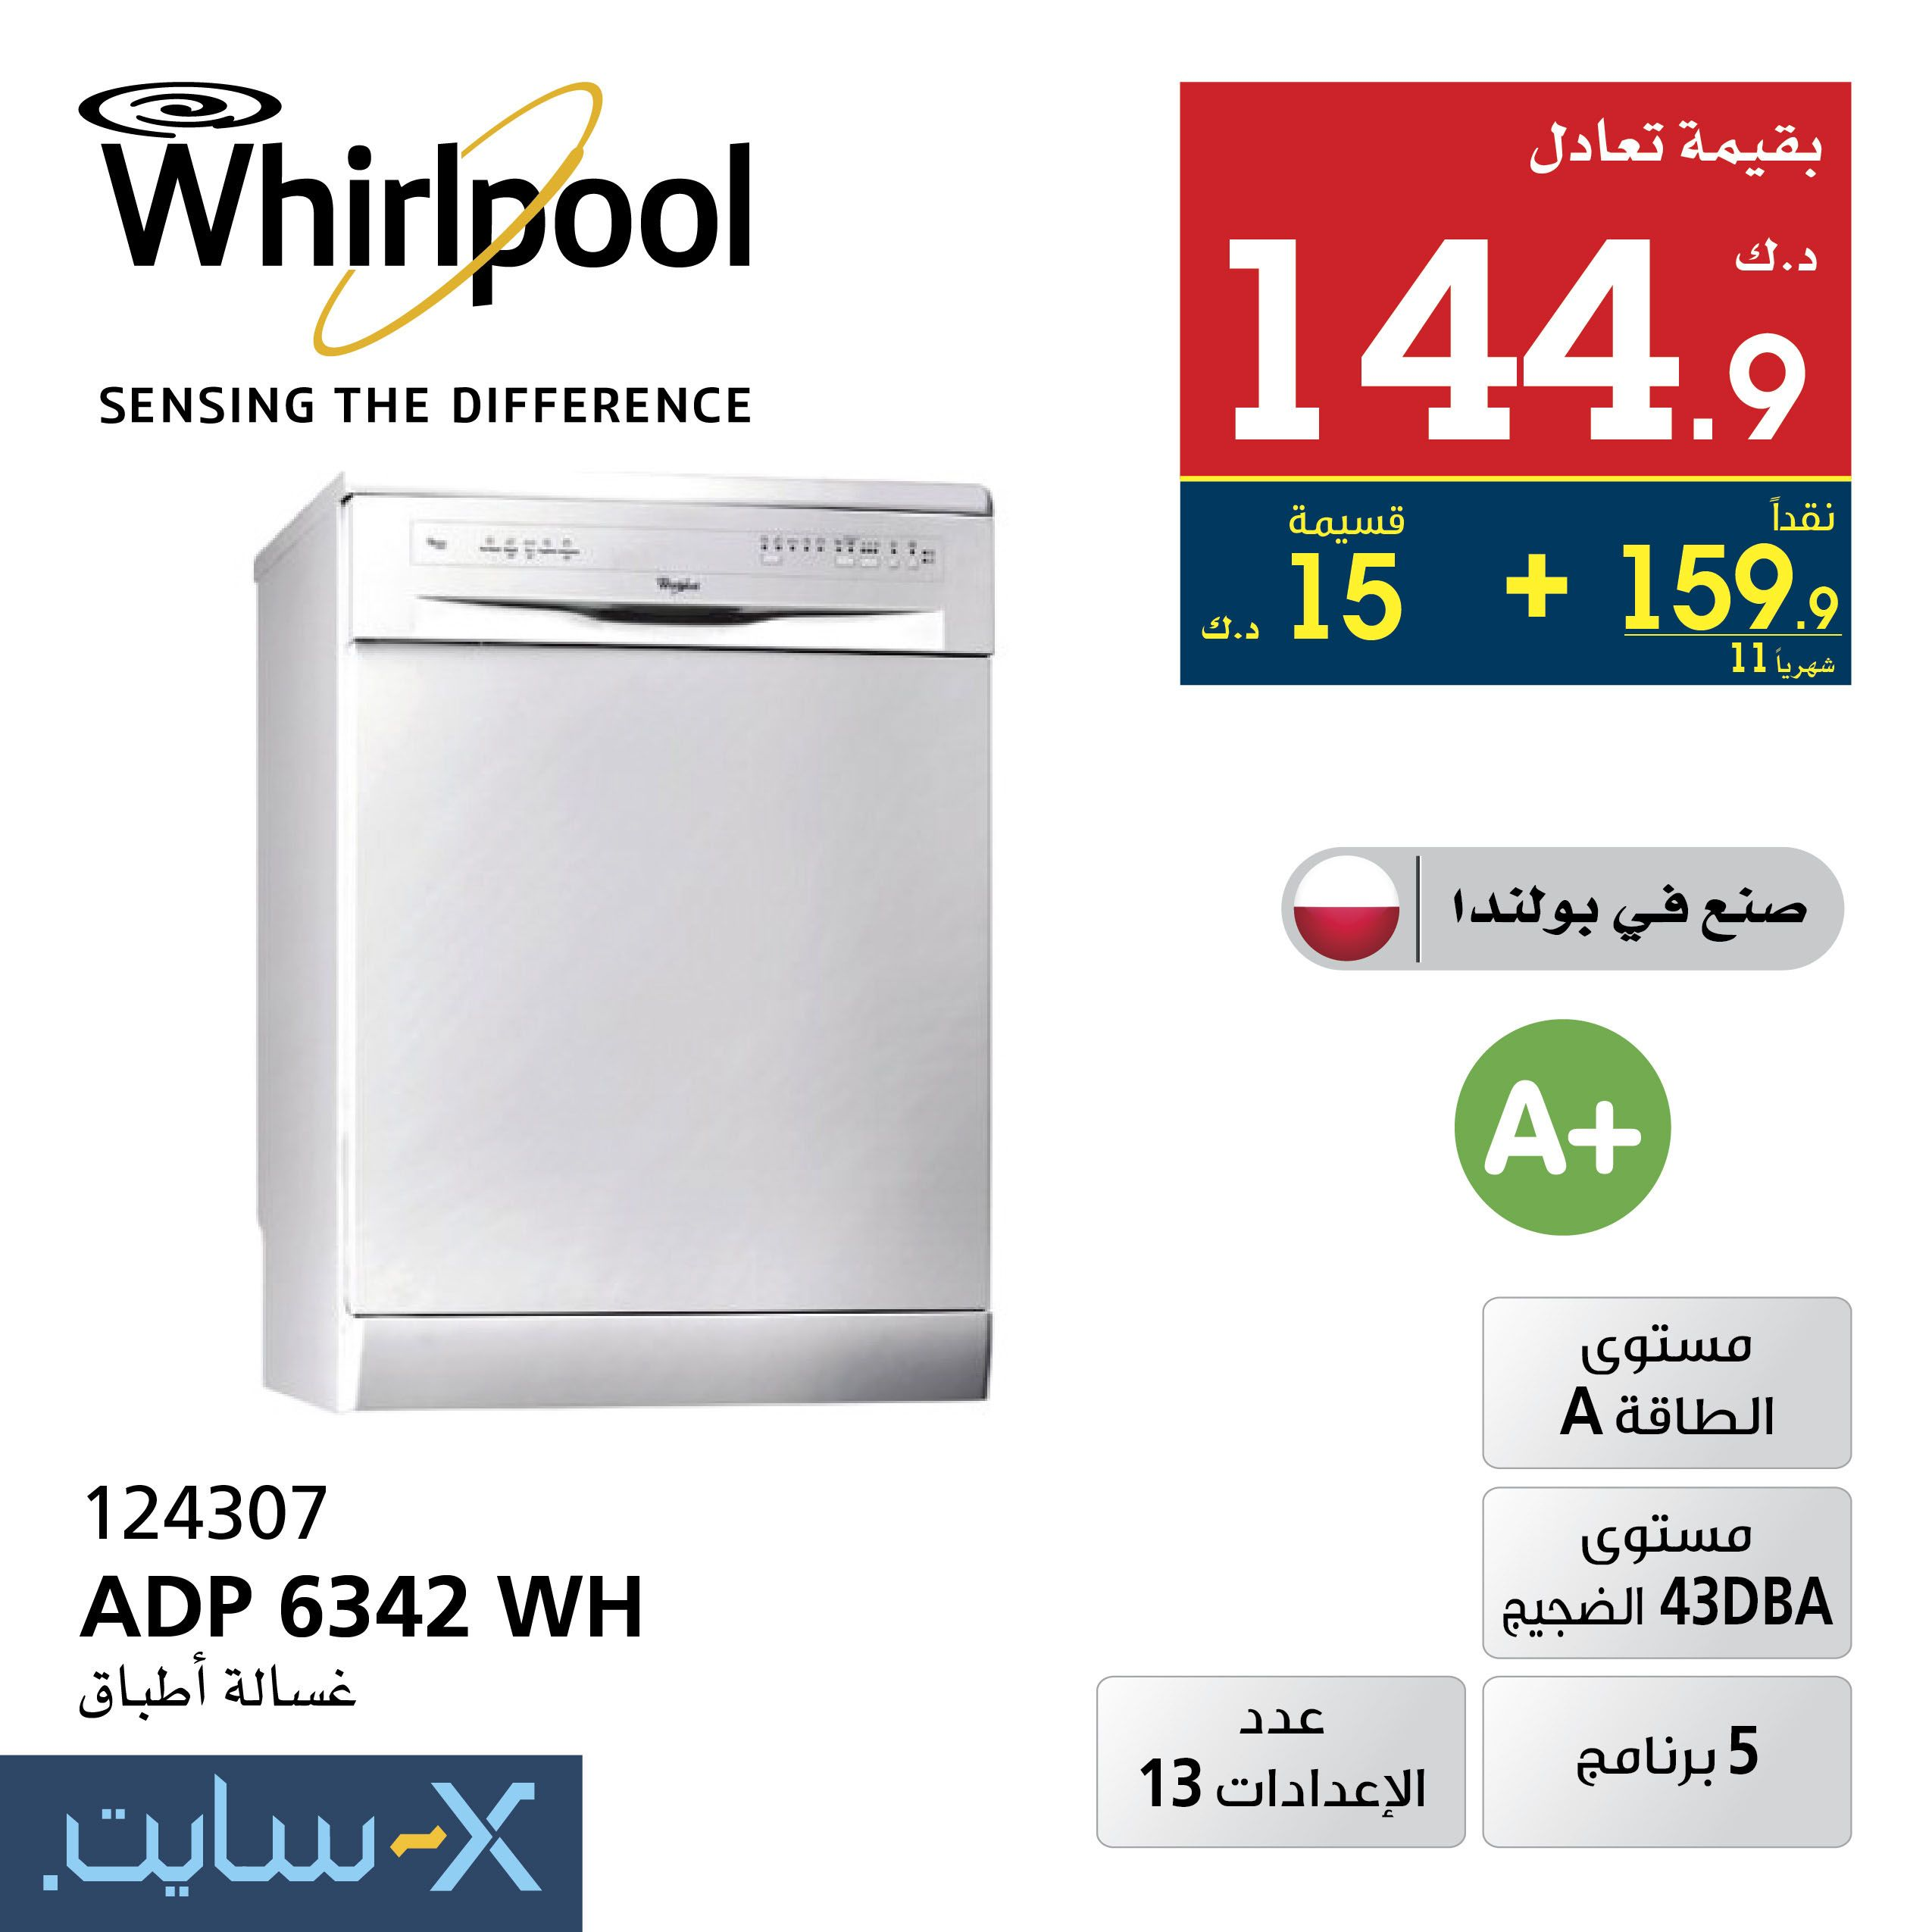 Whirlpool Dish Washer Available For 159 900kd Whirlpool Washing